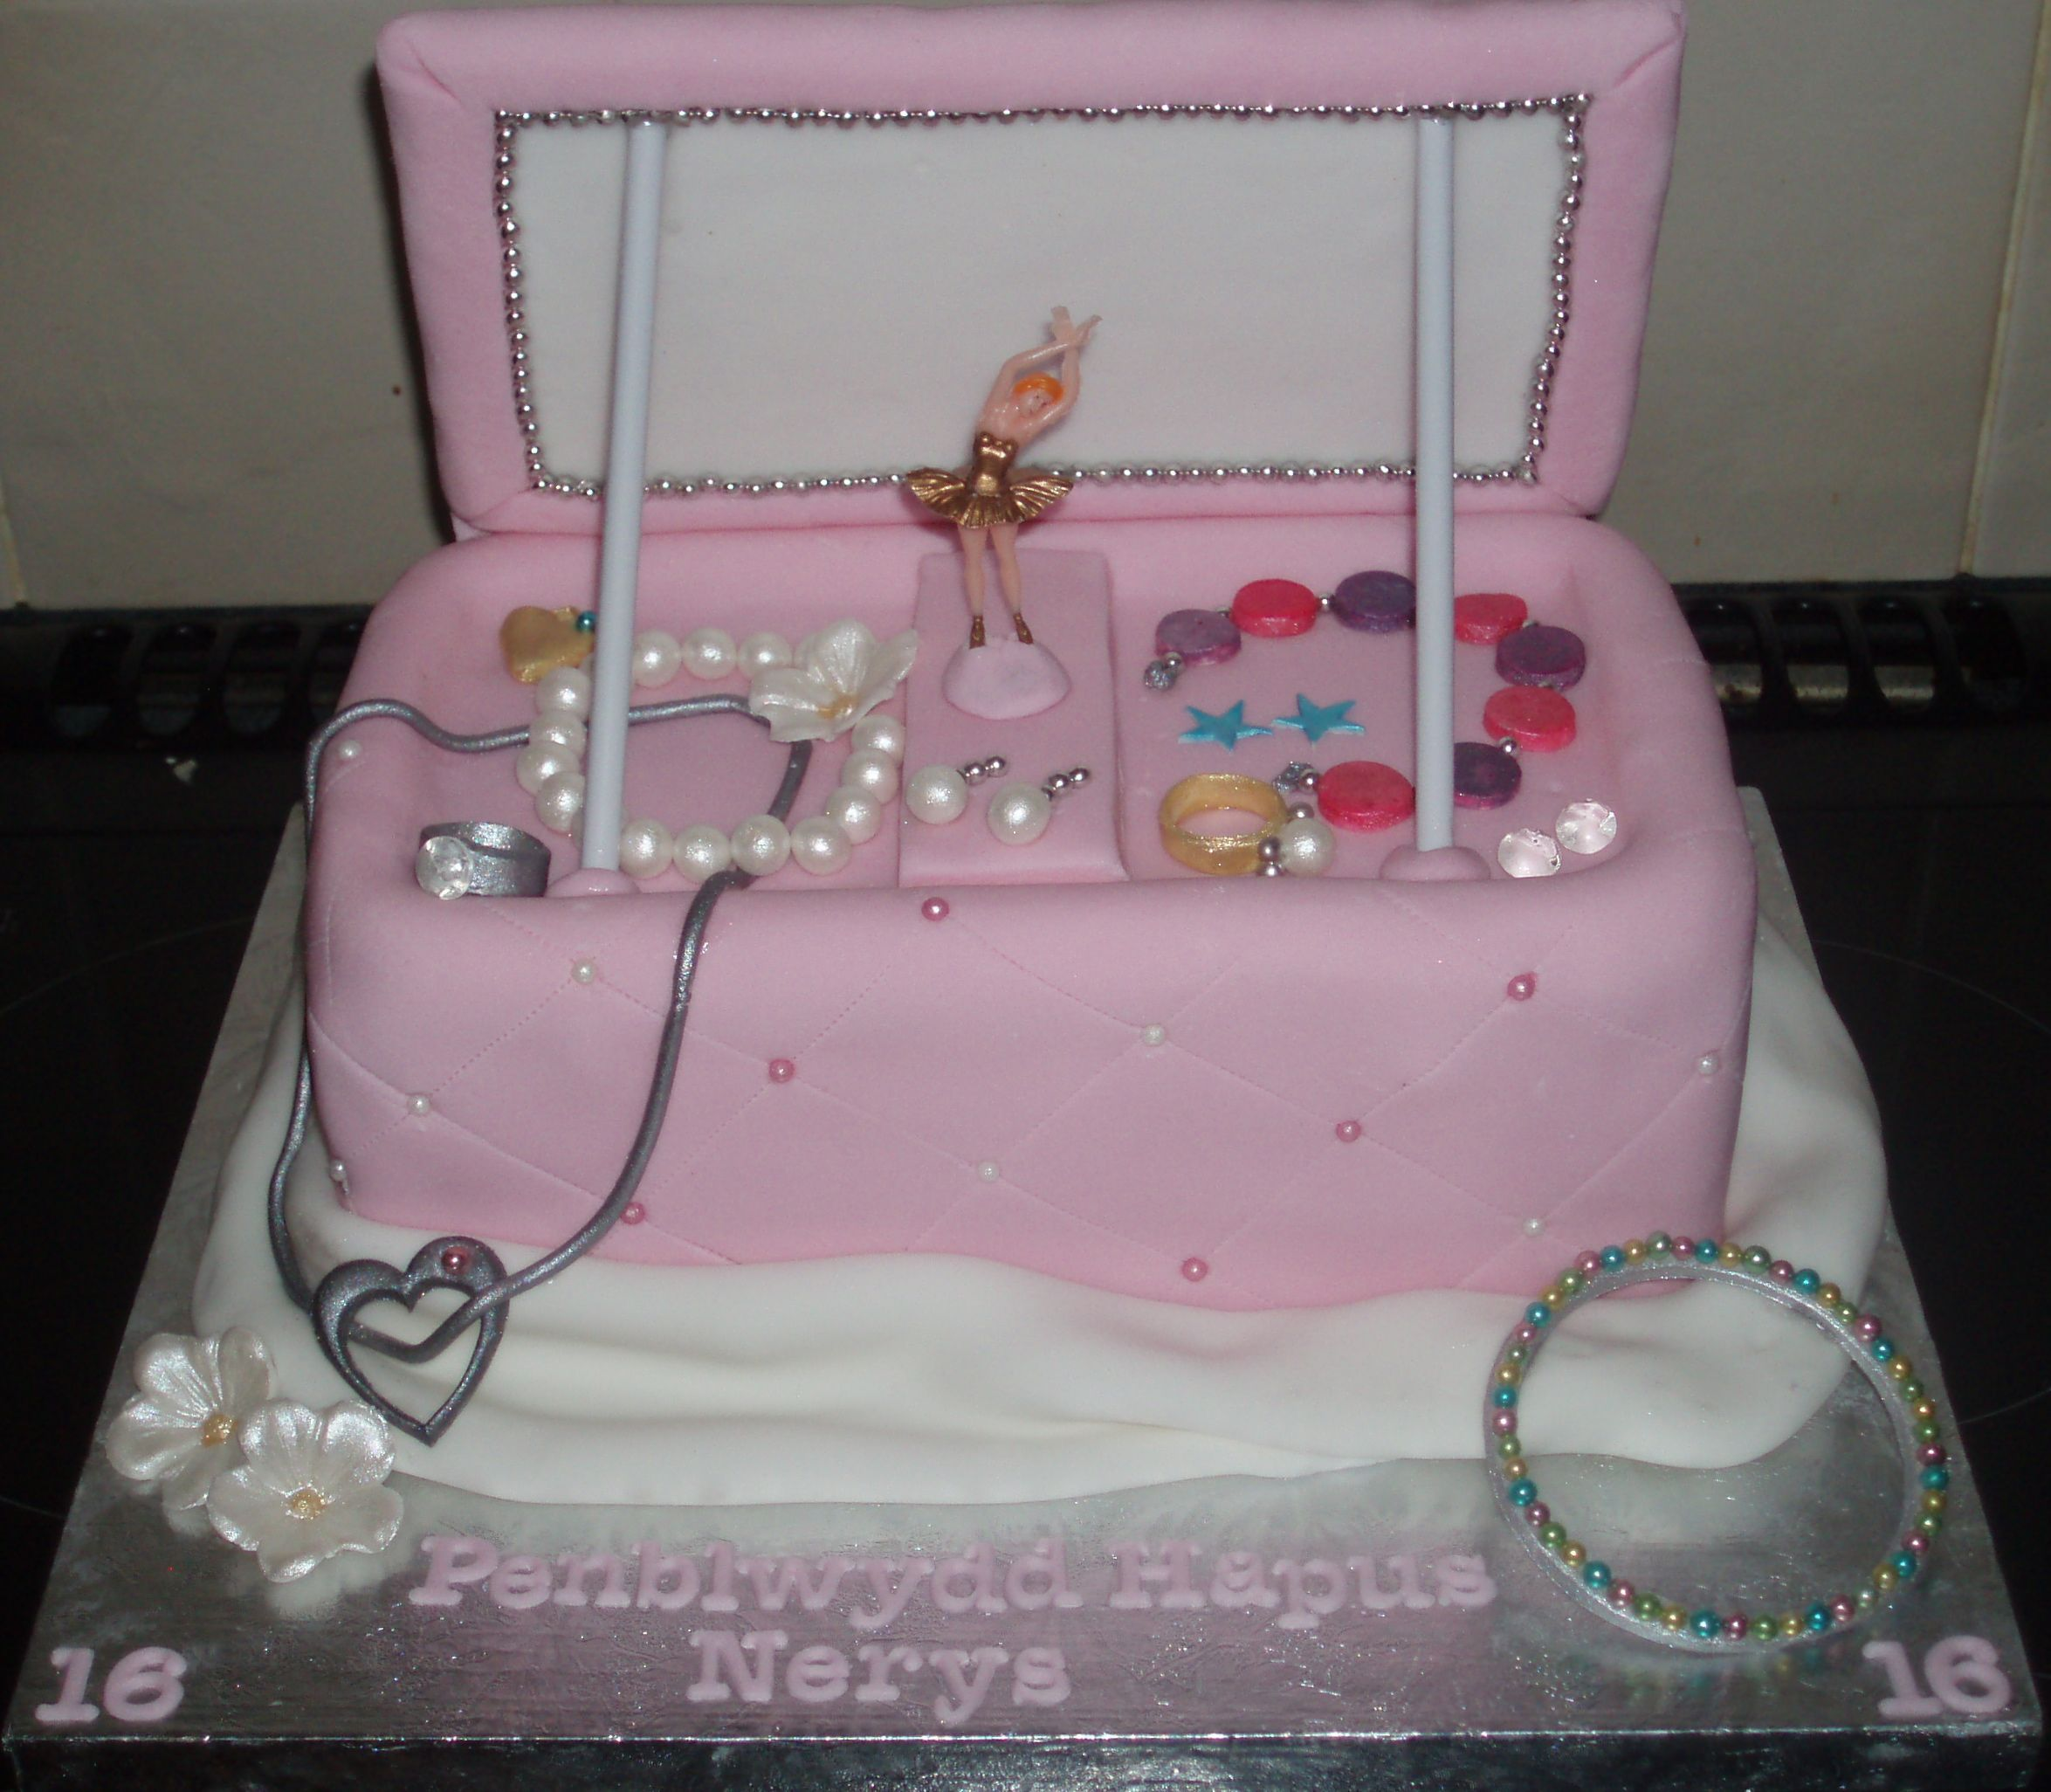 Jewelry box cake all the jewelry is hand made and edible Edible